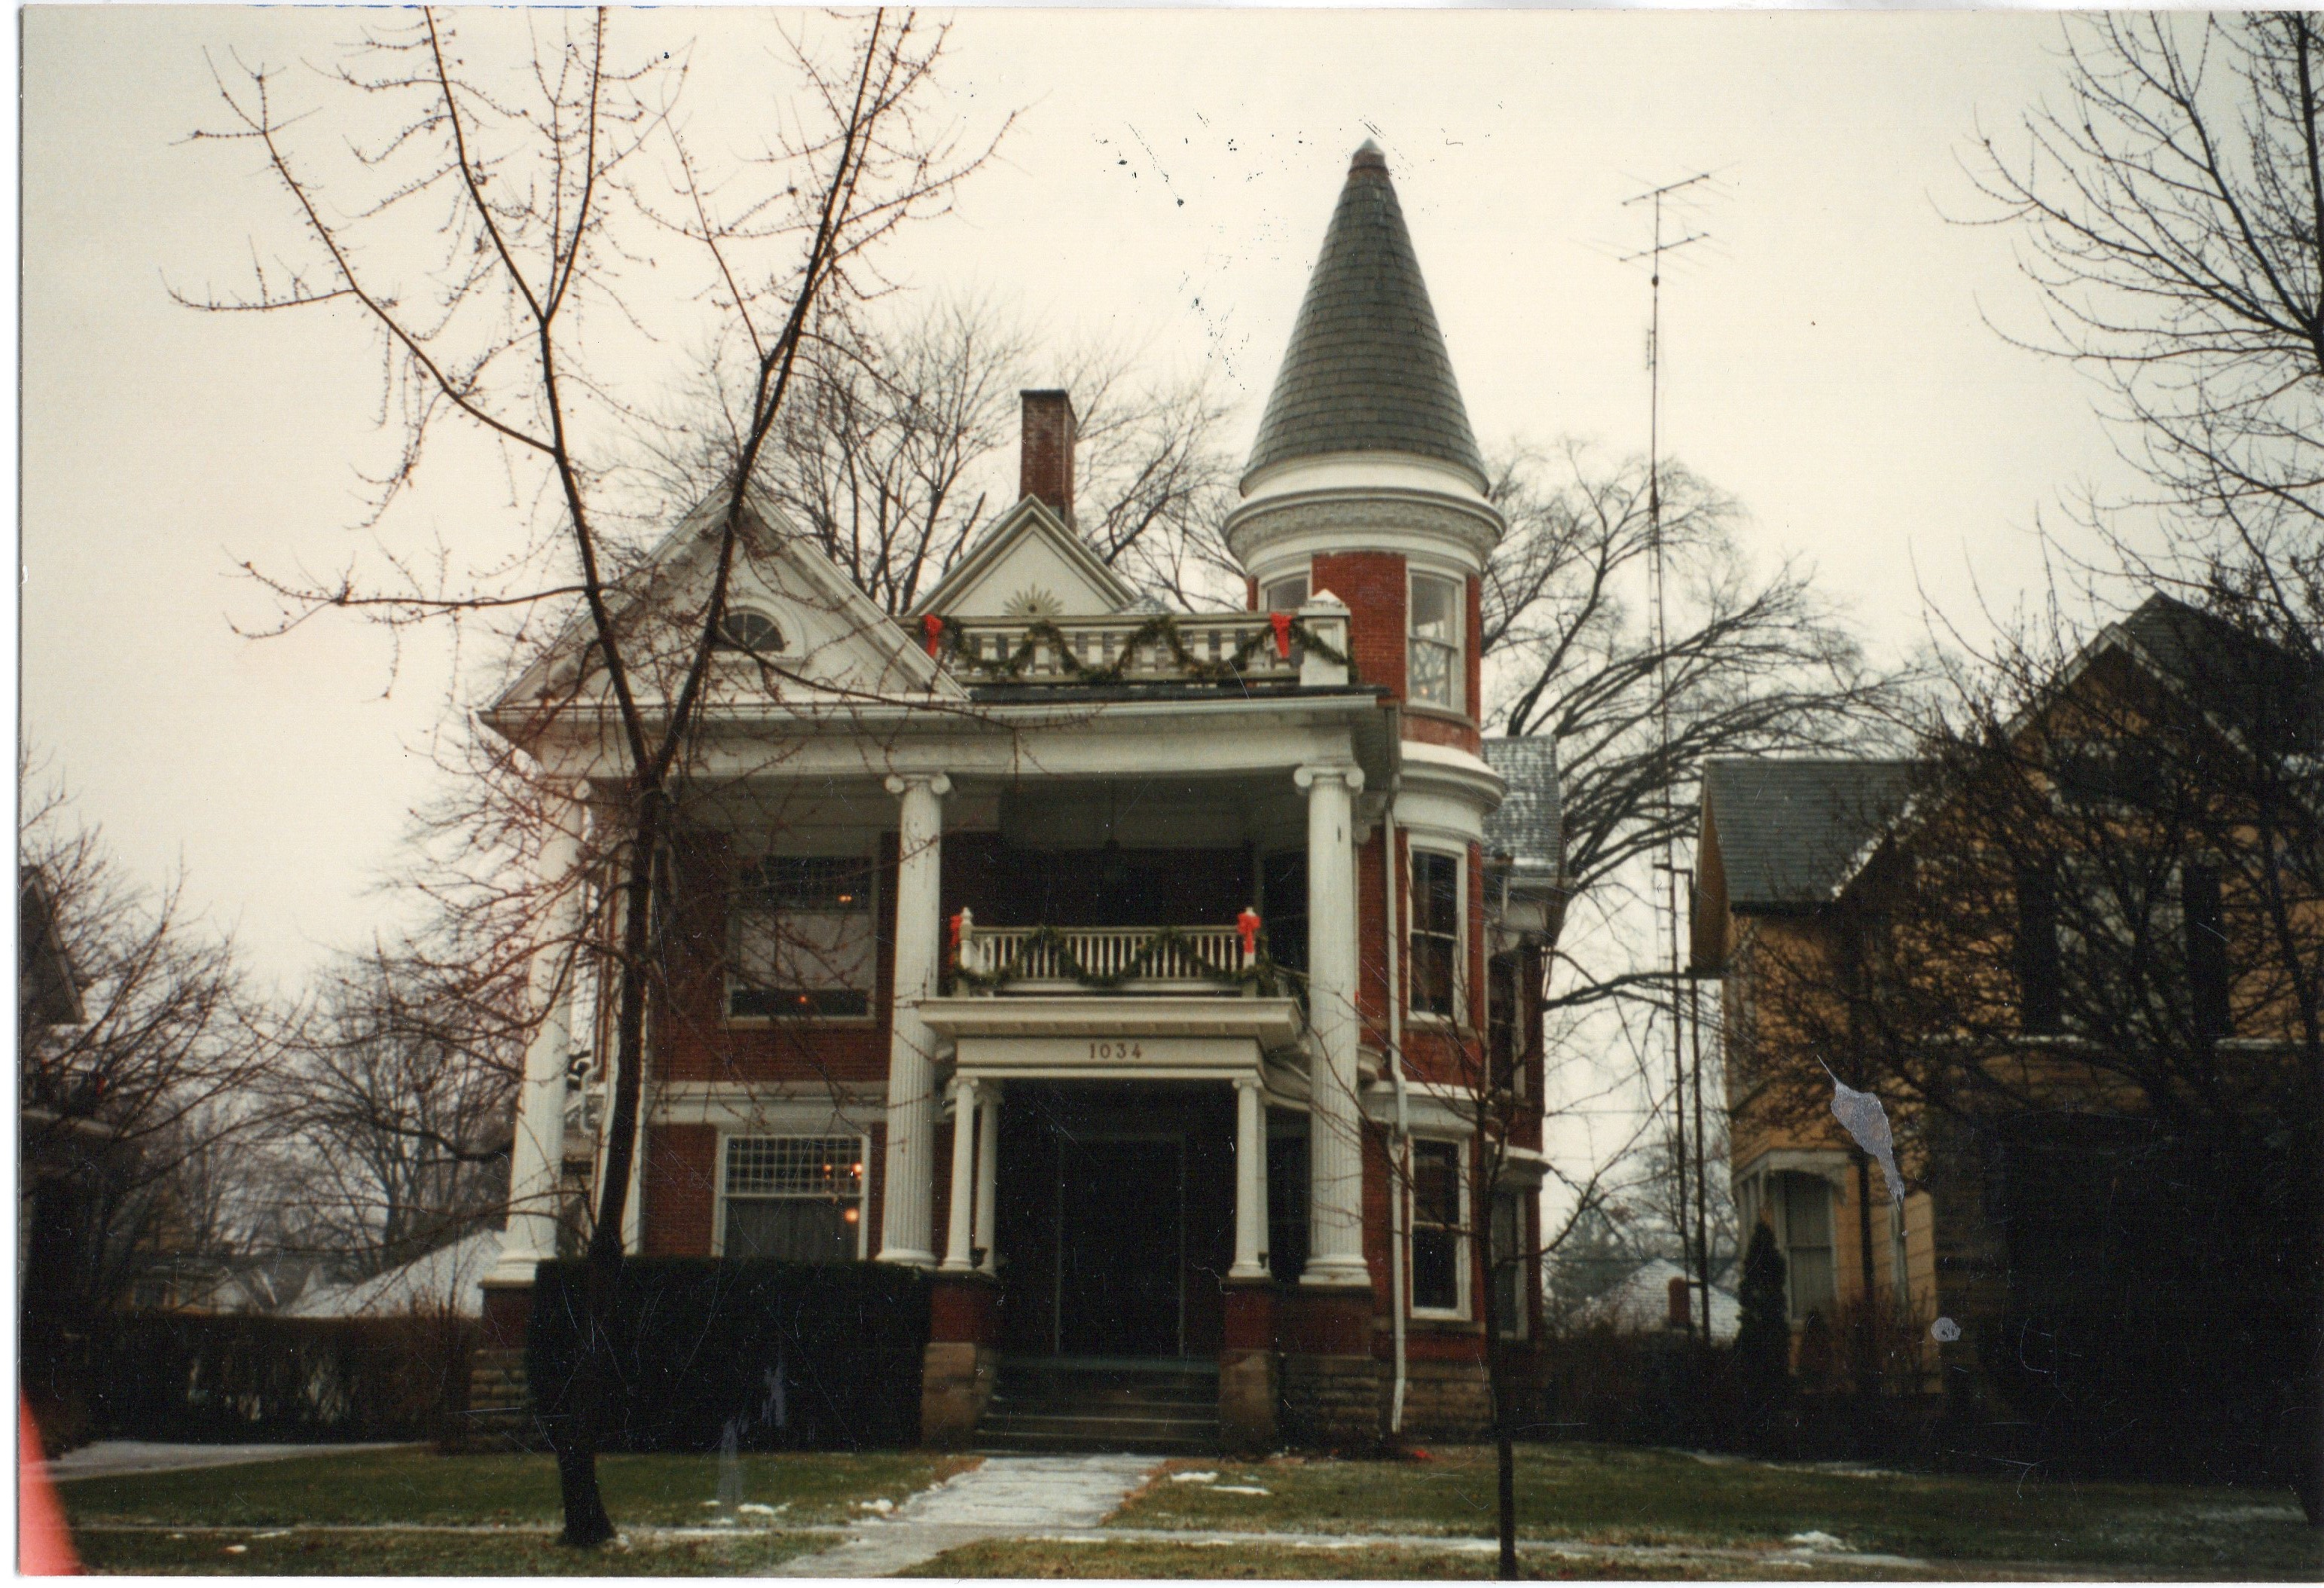 January 1991 (South Main Street Collection)